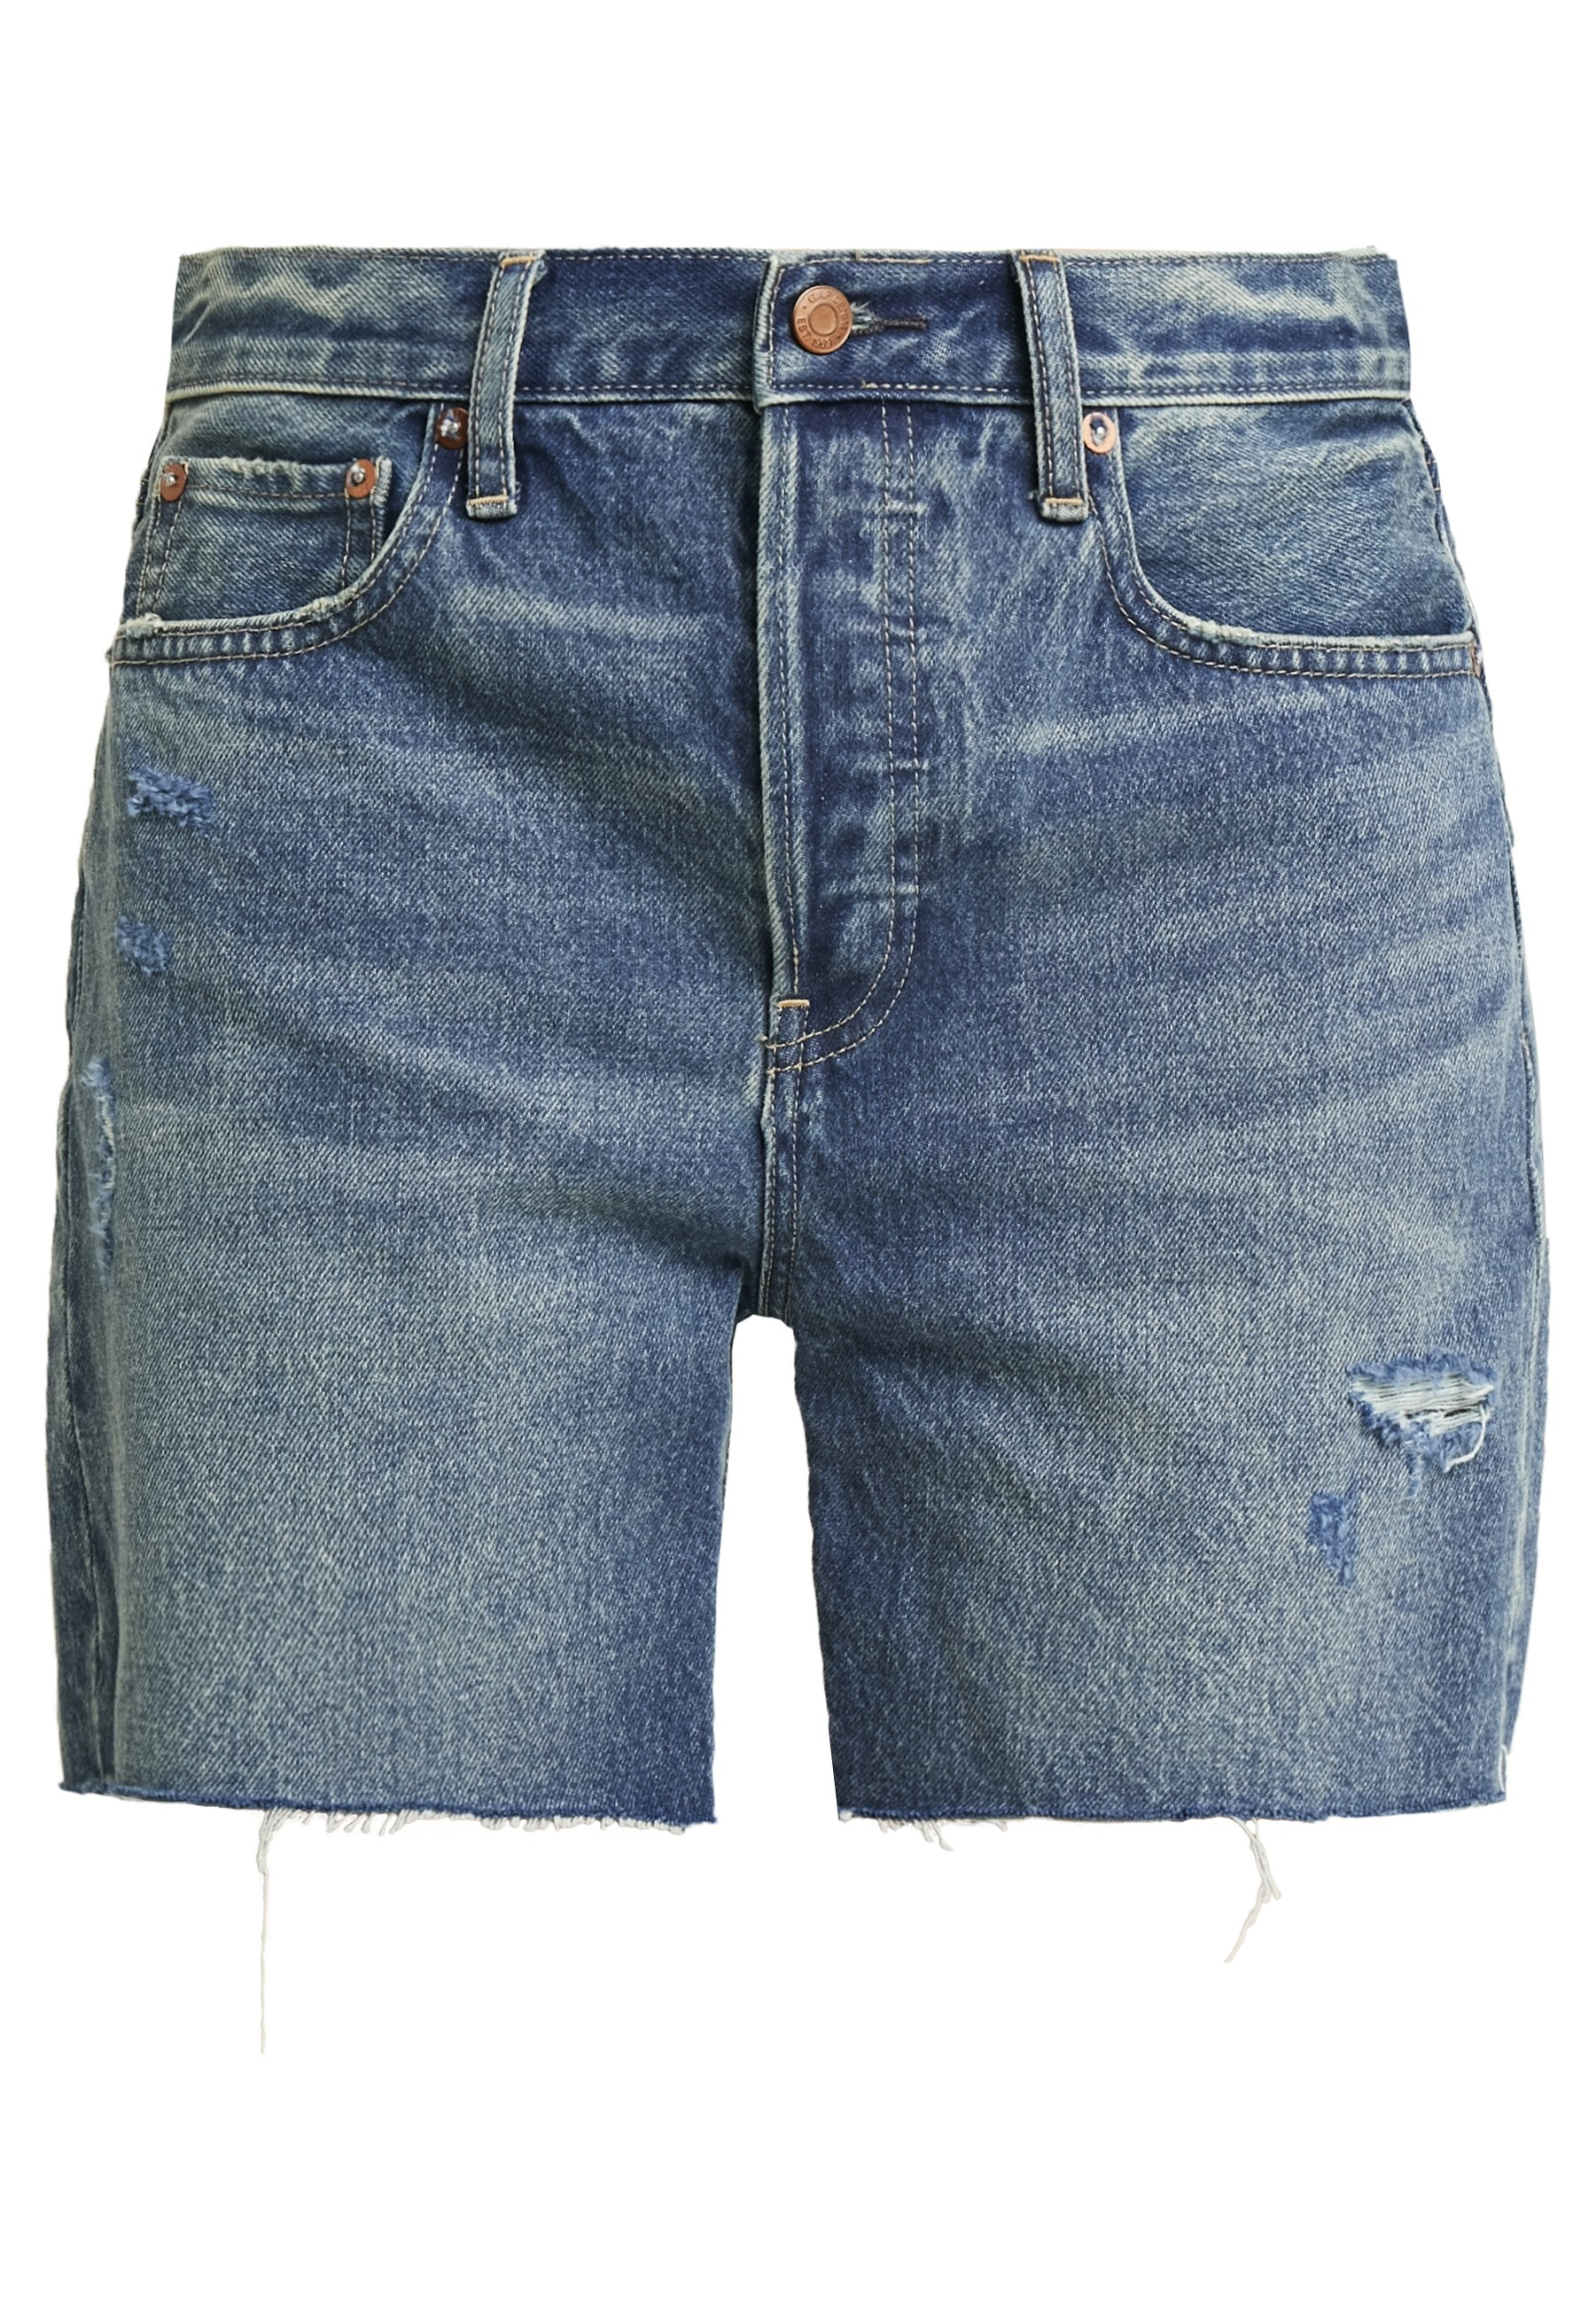 Gap Short Burton - Denim Shorts Medium Indigo